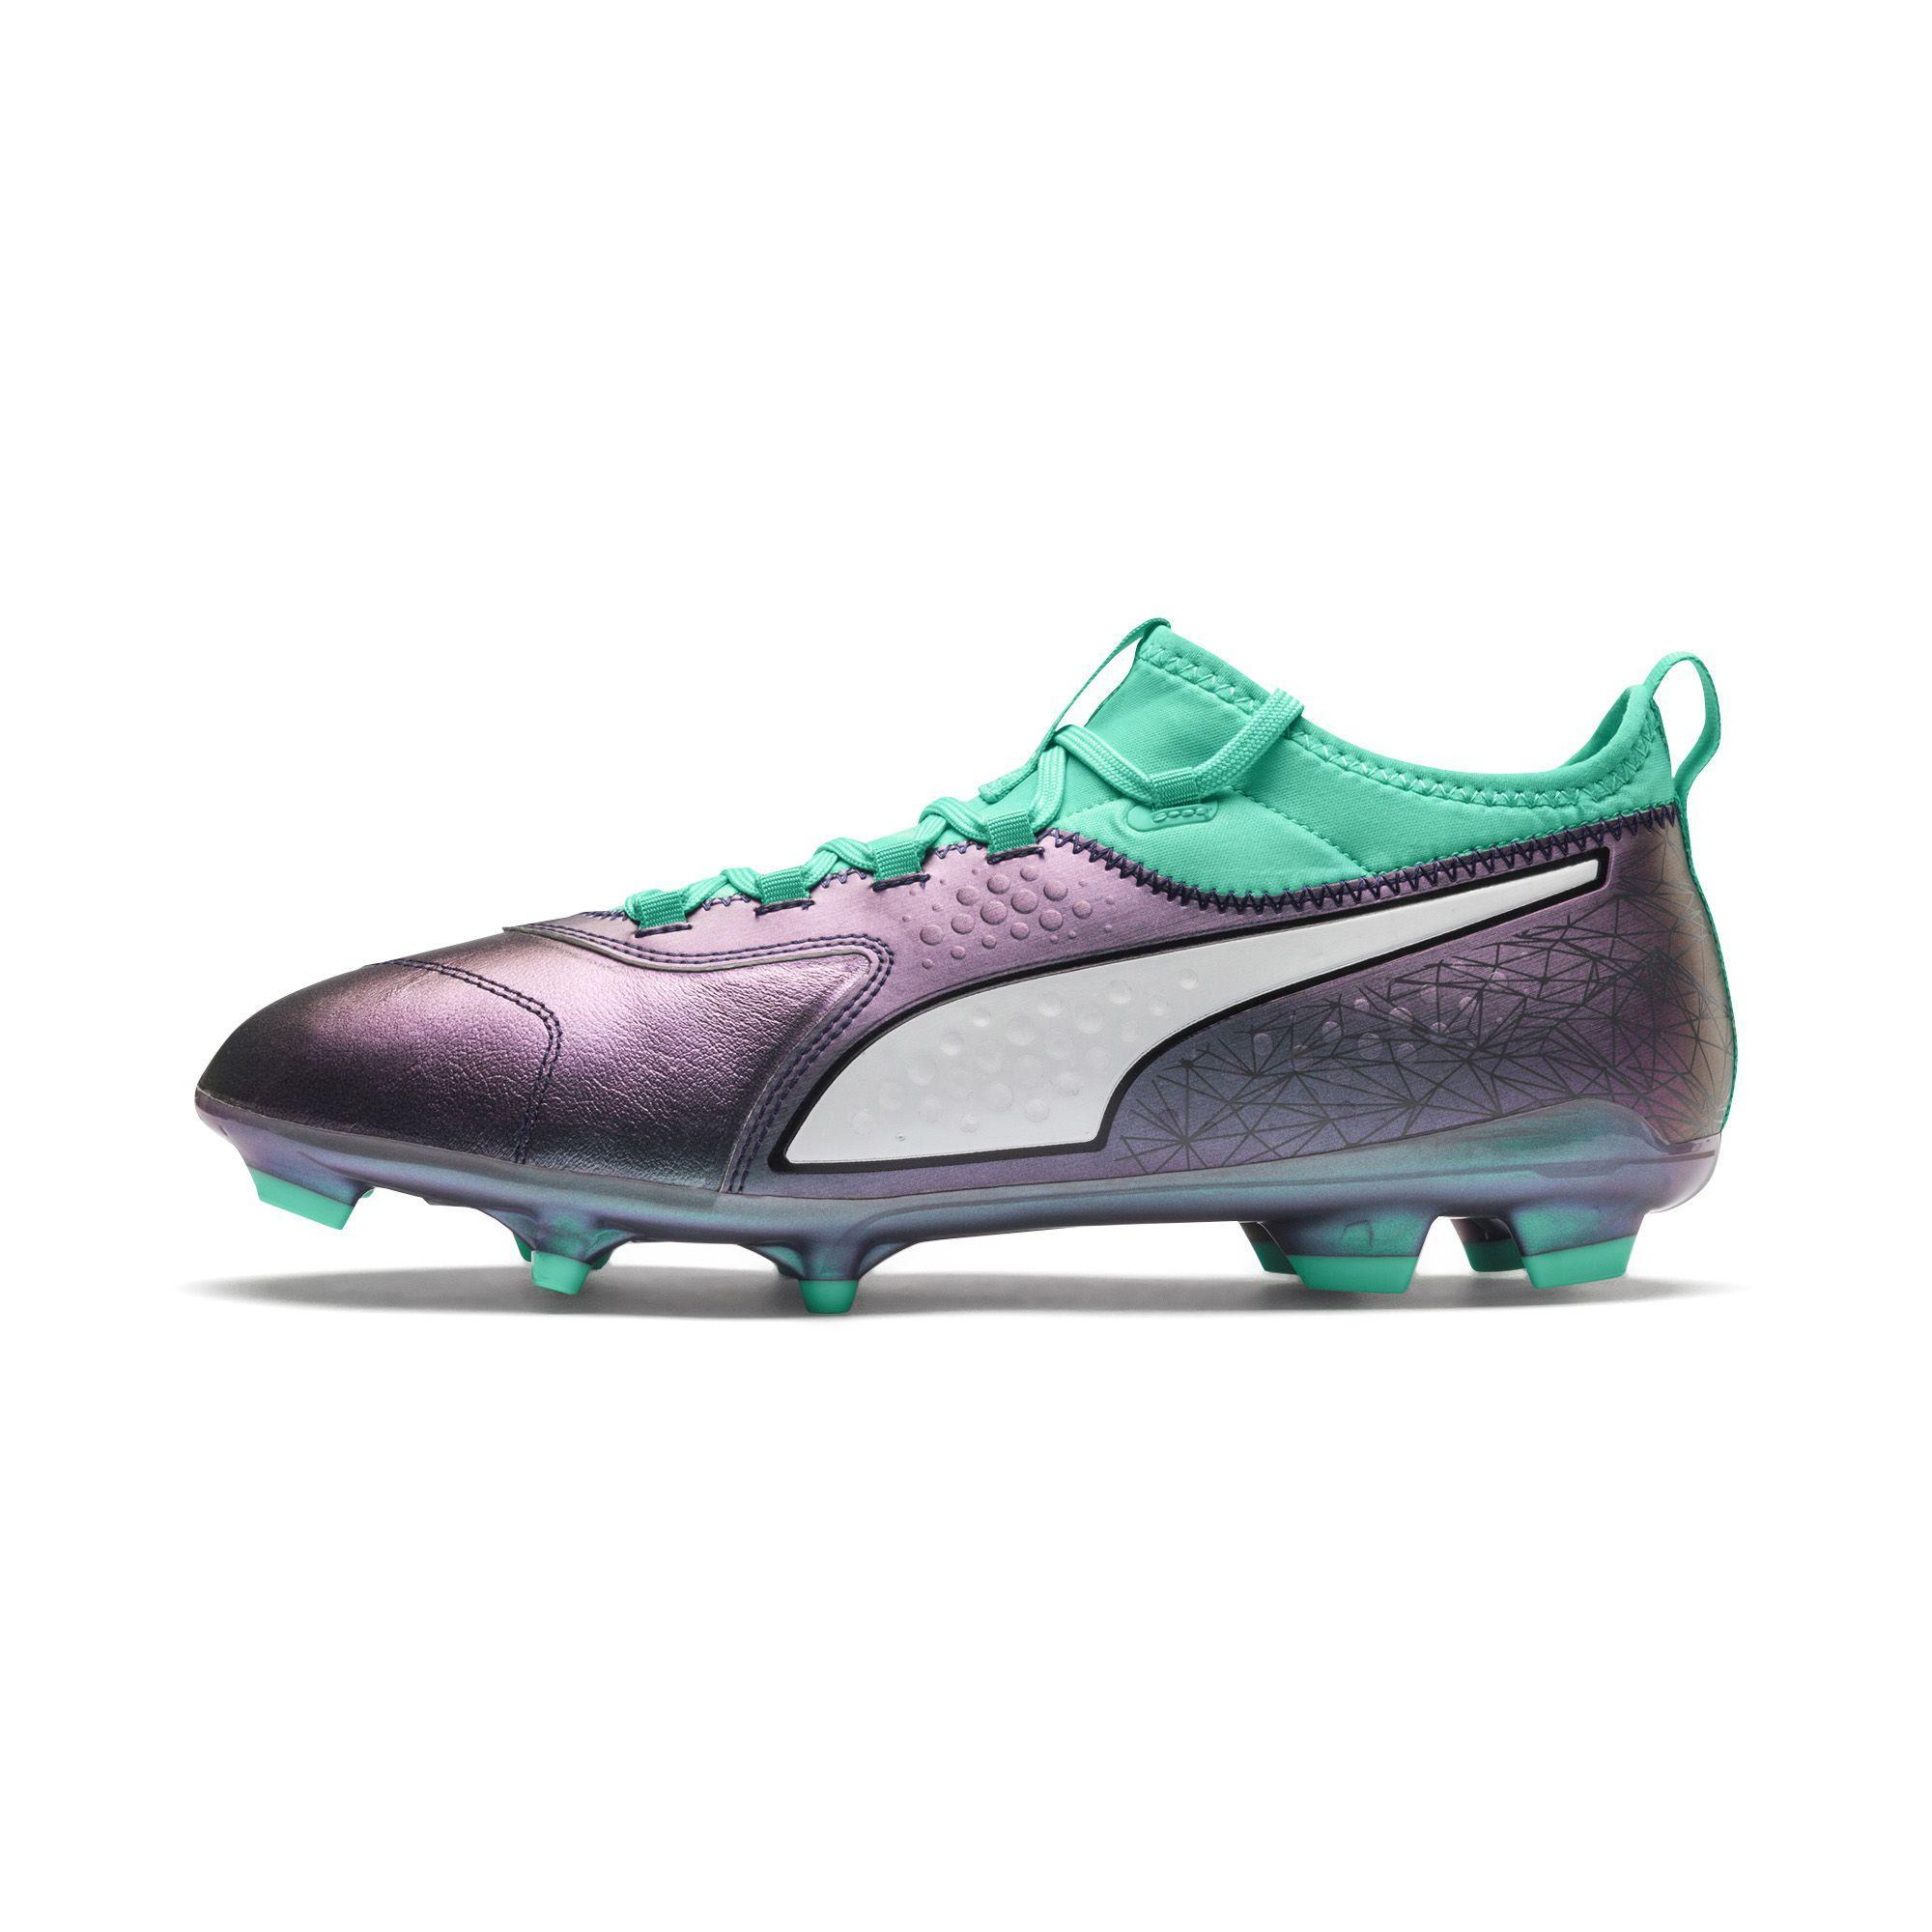 Puma Fußball-schuhe One 3 Illuminate Leather Fg